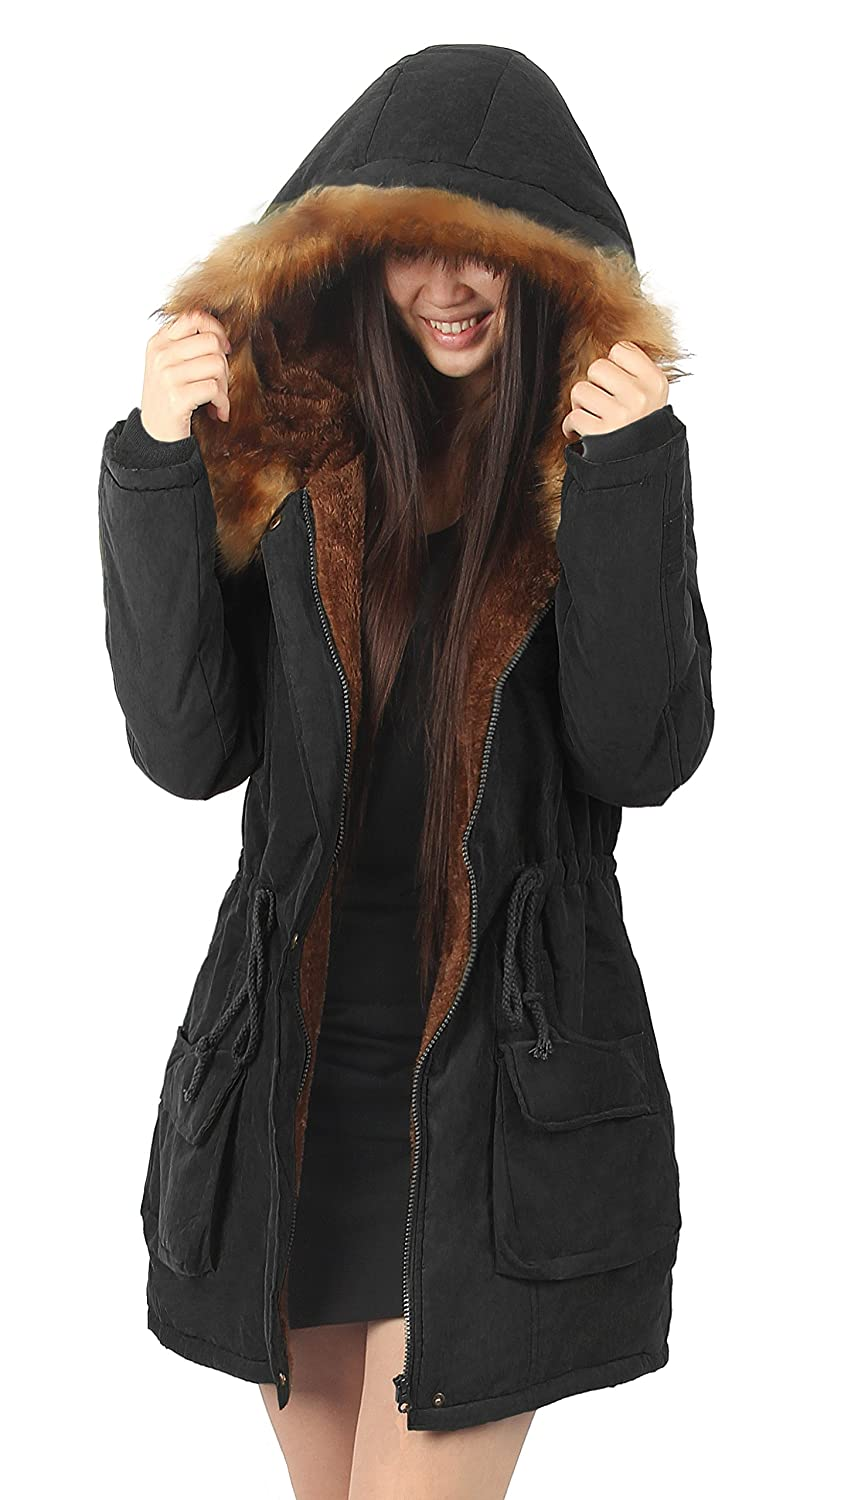 Amazon.com: iLoveSIA Womens Hooded Warm Coats Parkas with Faux Fur ...